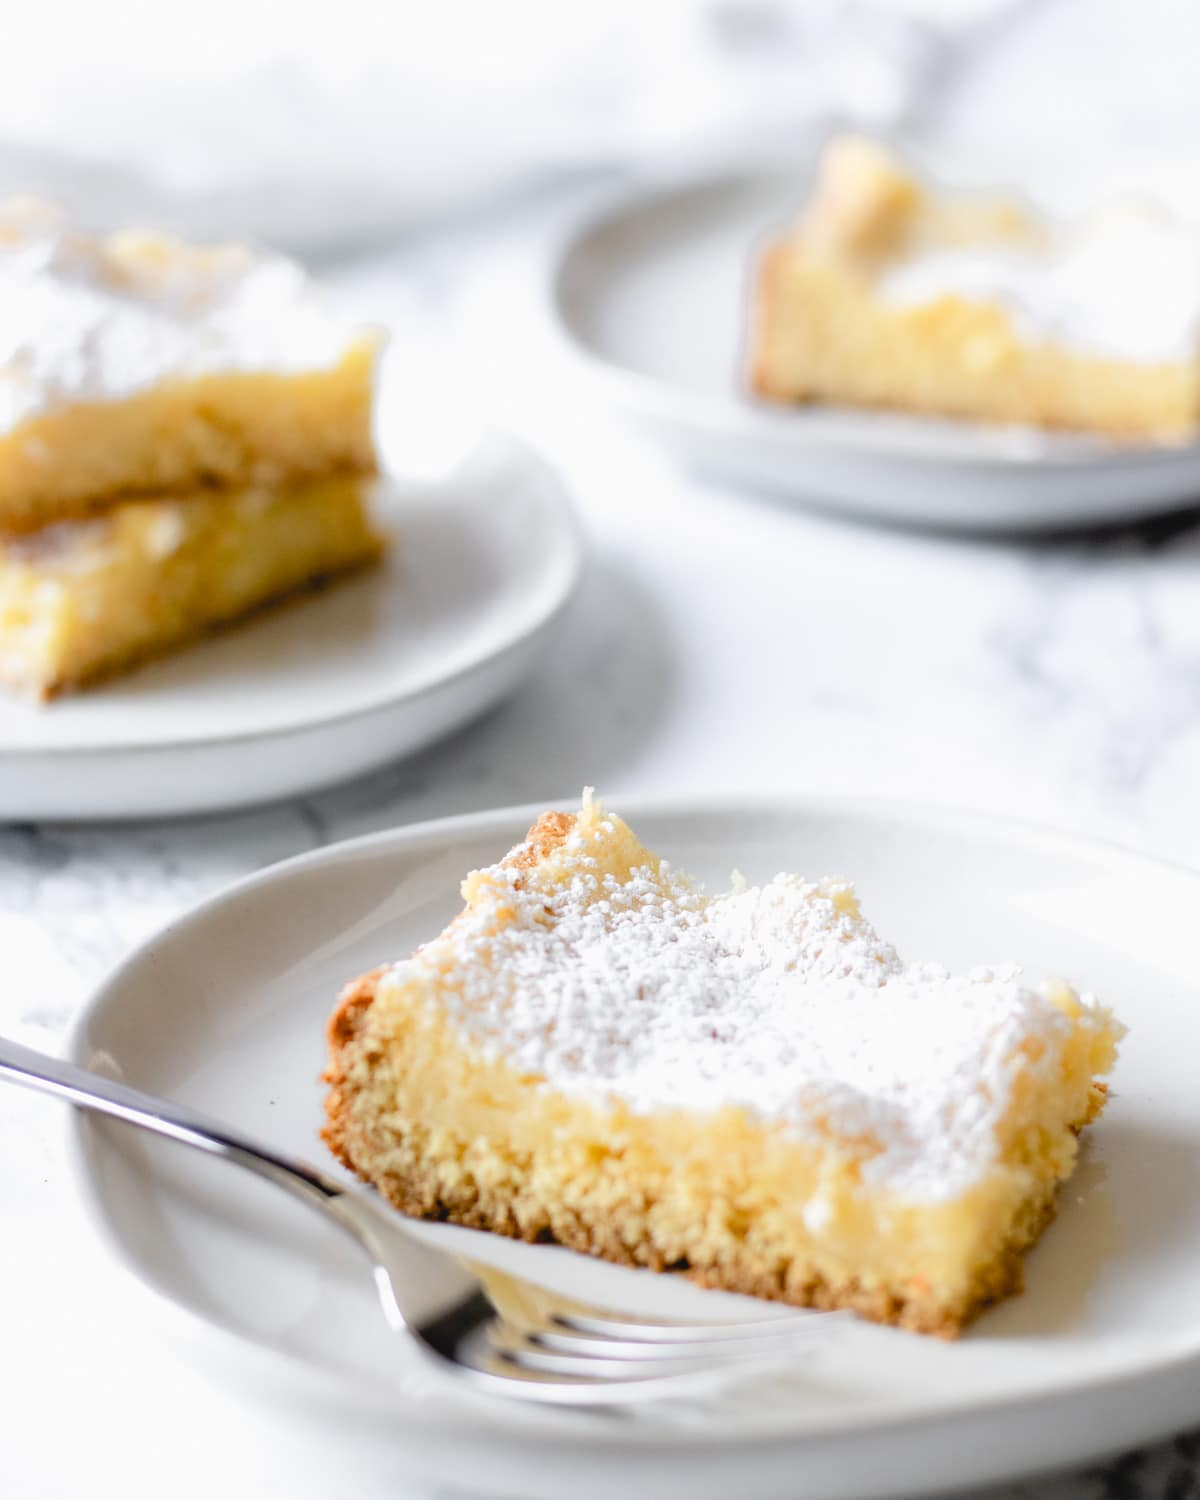 Square of gooey butter cake on a plate with a fork. Other plates have pieces stacked.